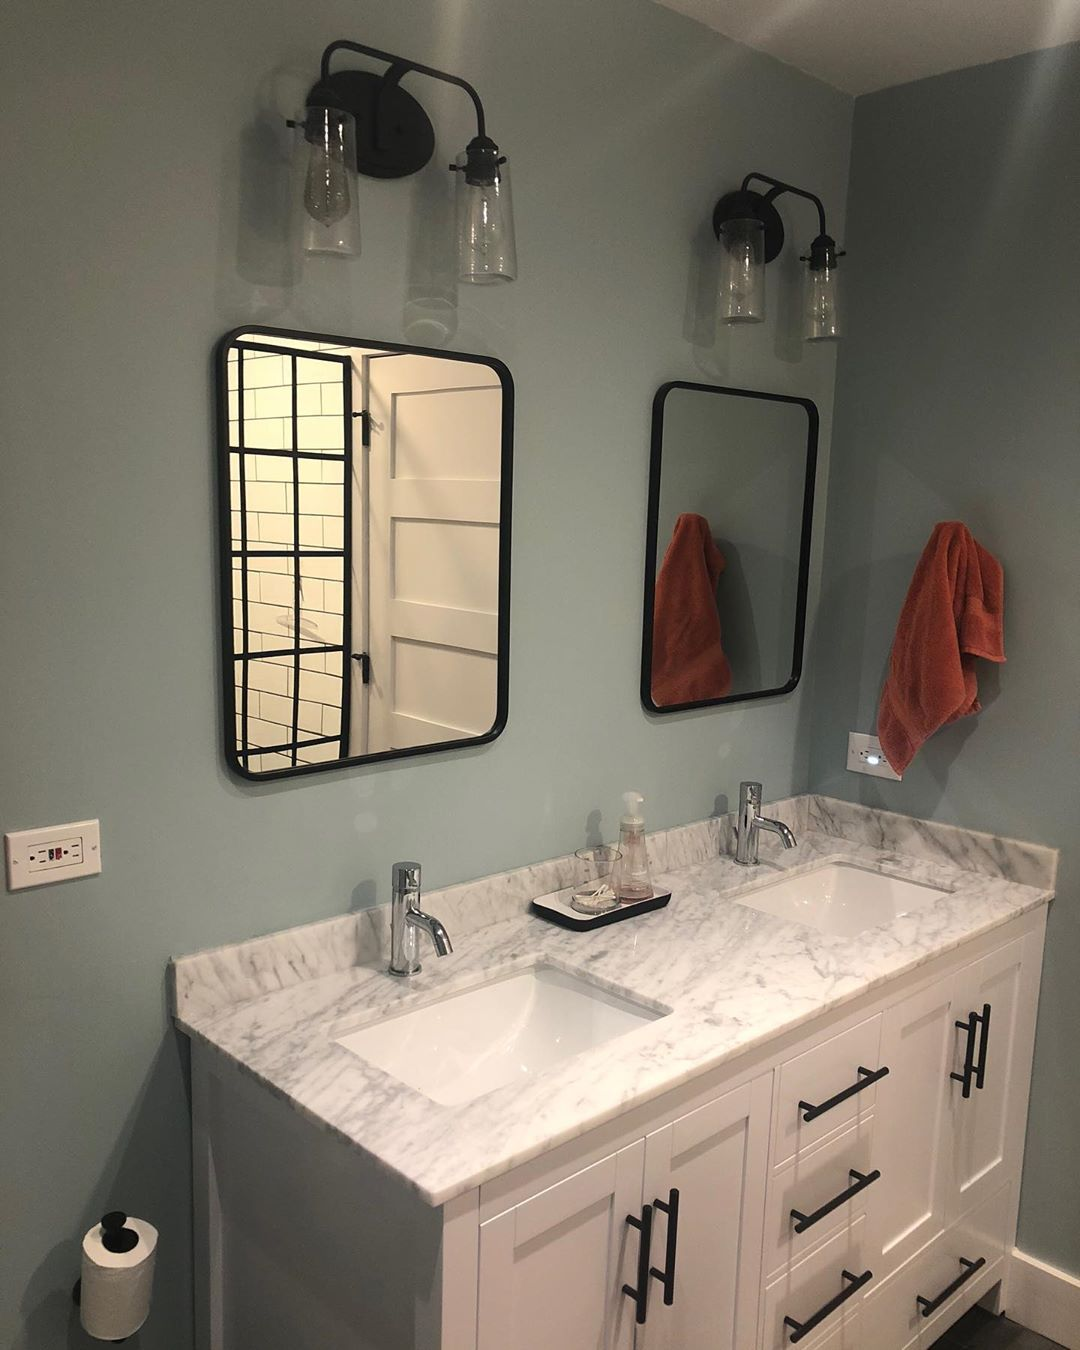 Check It Out This Lovely Bathroom Remodel Is Topped Off With Target S Project 62 Metal Framed Wall Mirrors 39 99 Each Looks Beautiful